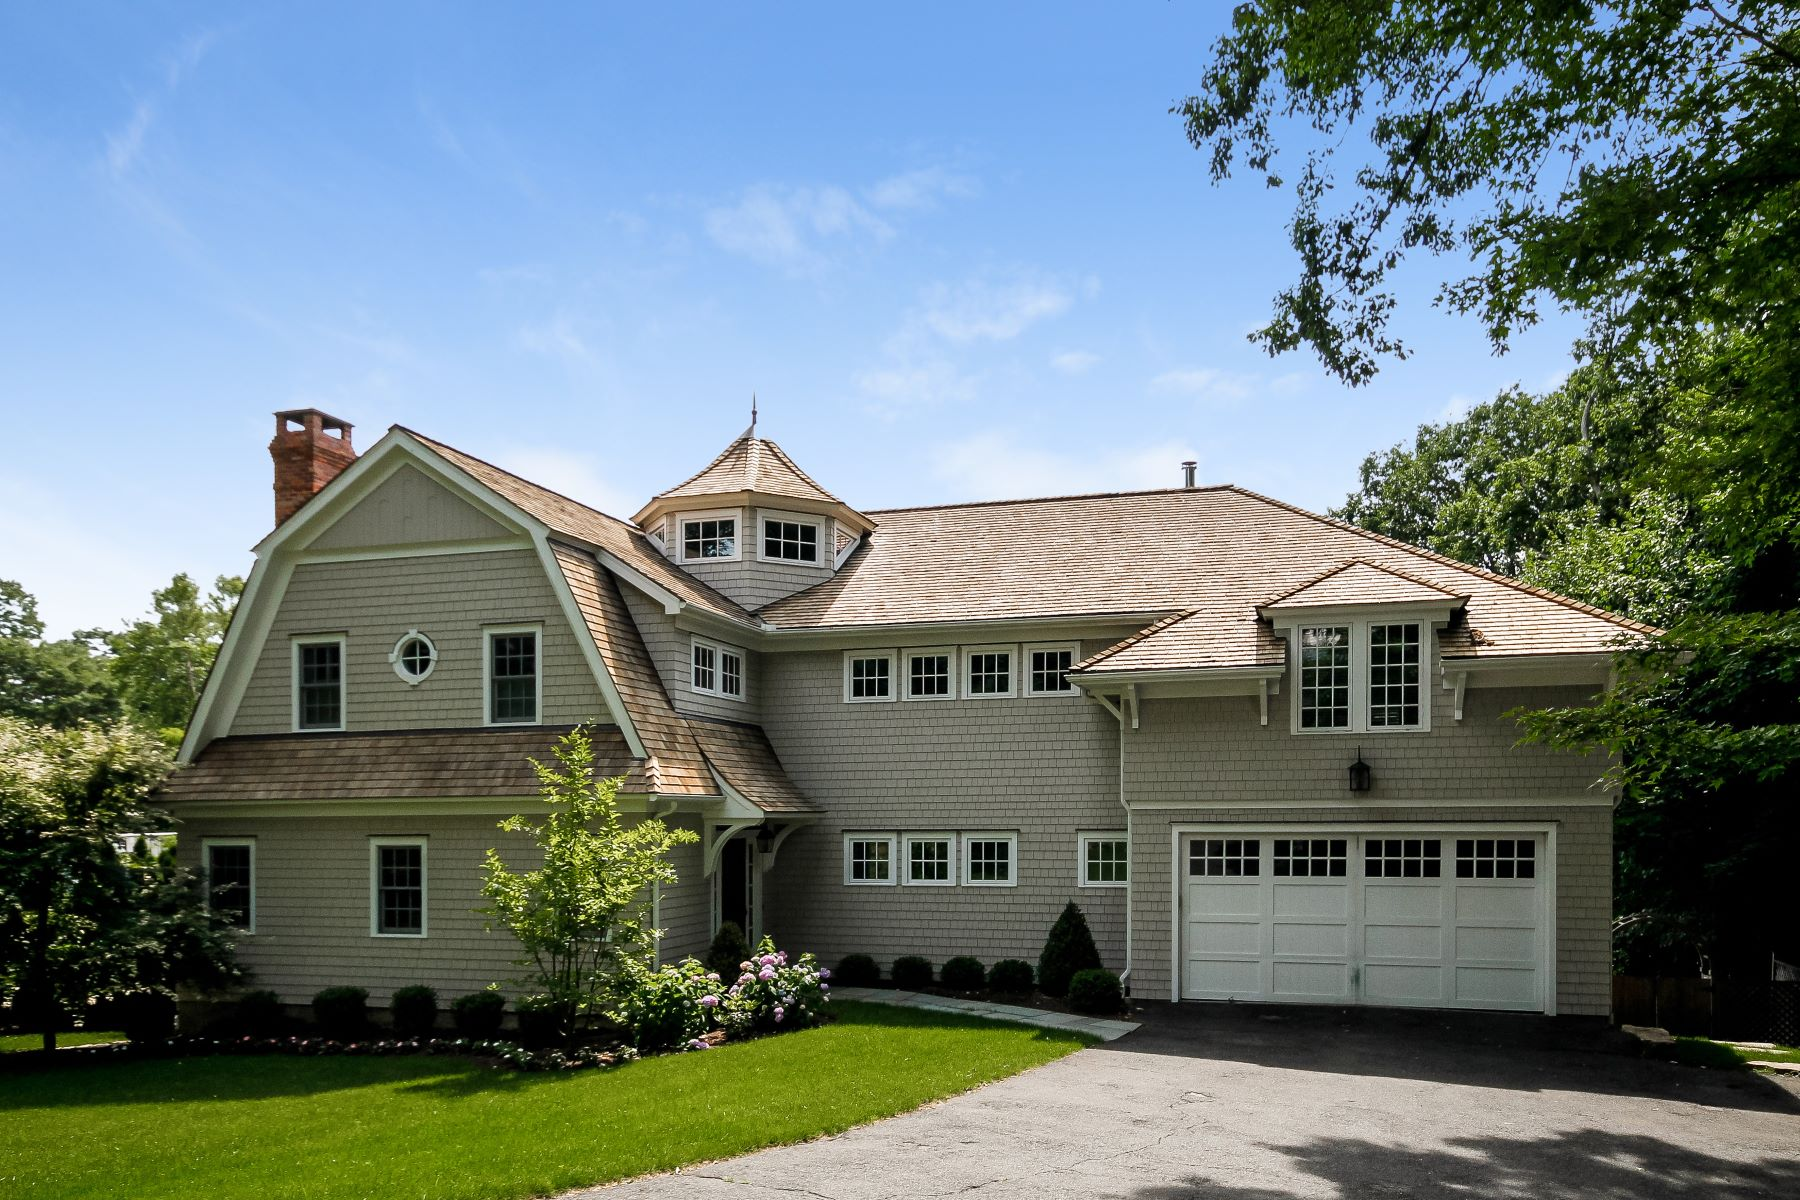 Single Family Homes for Sale at Totally Rebuilt Colonial in the Heart of Greens Farms 16 Turkey Hill Road South Westport, Connecticut 06880 United States